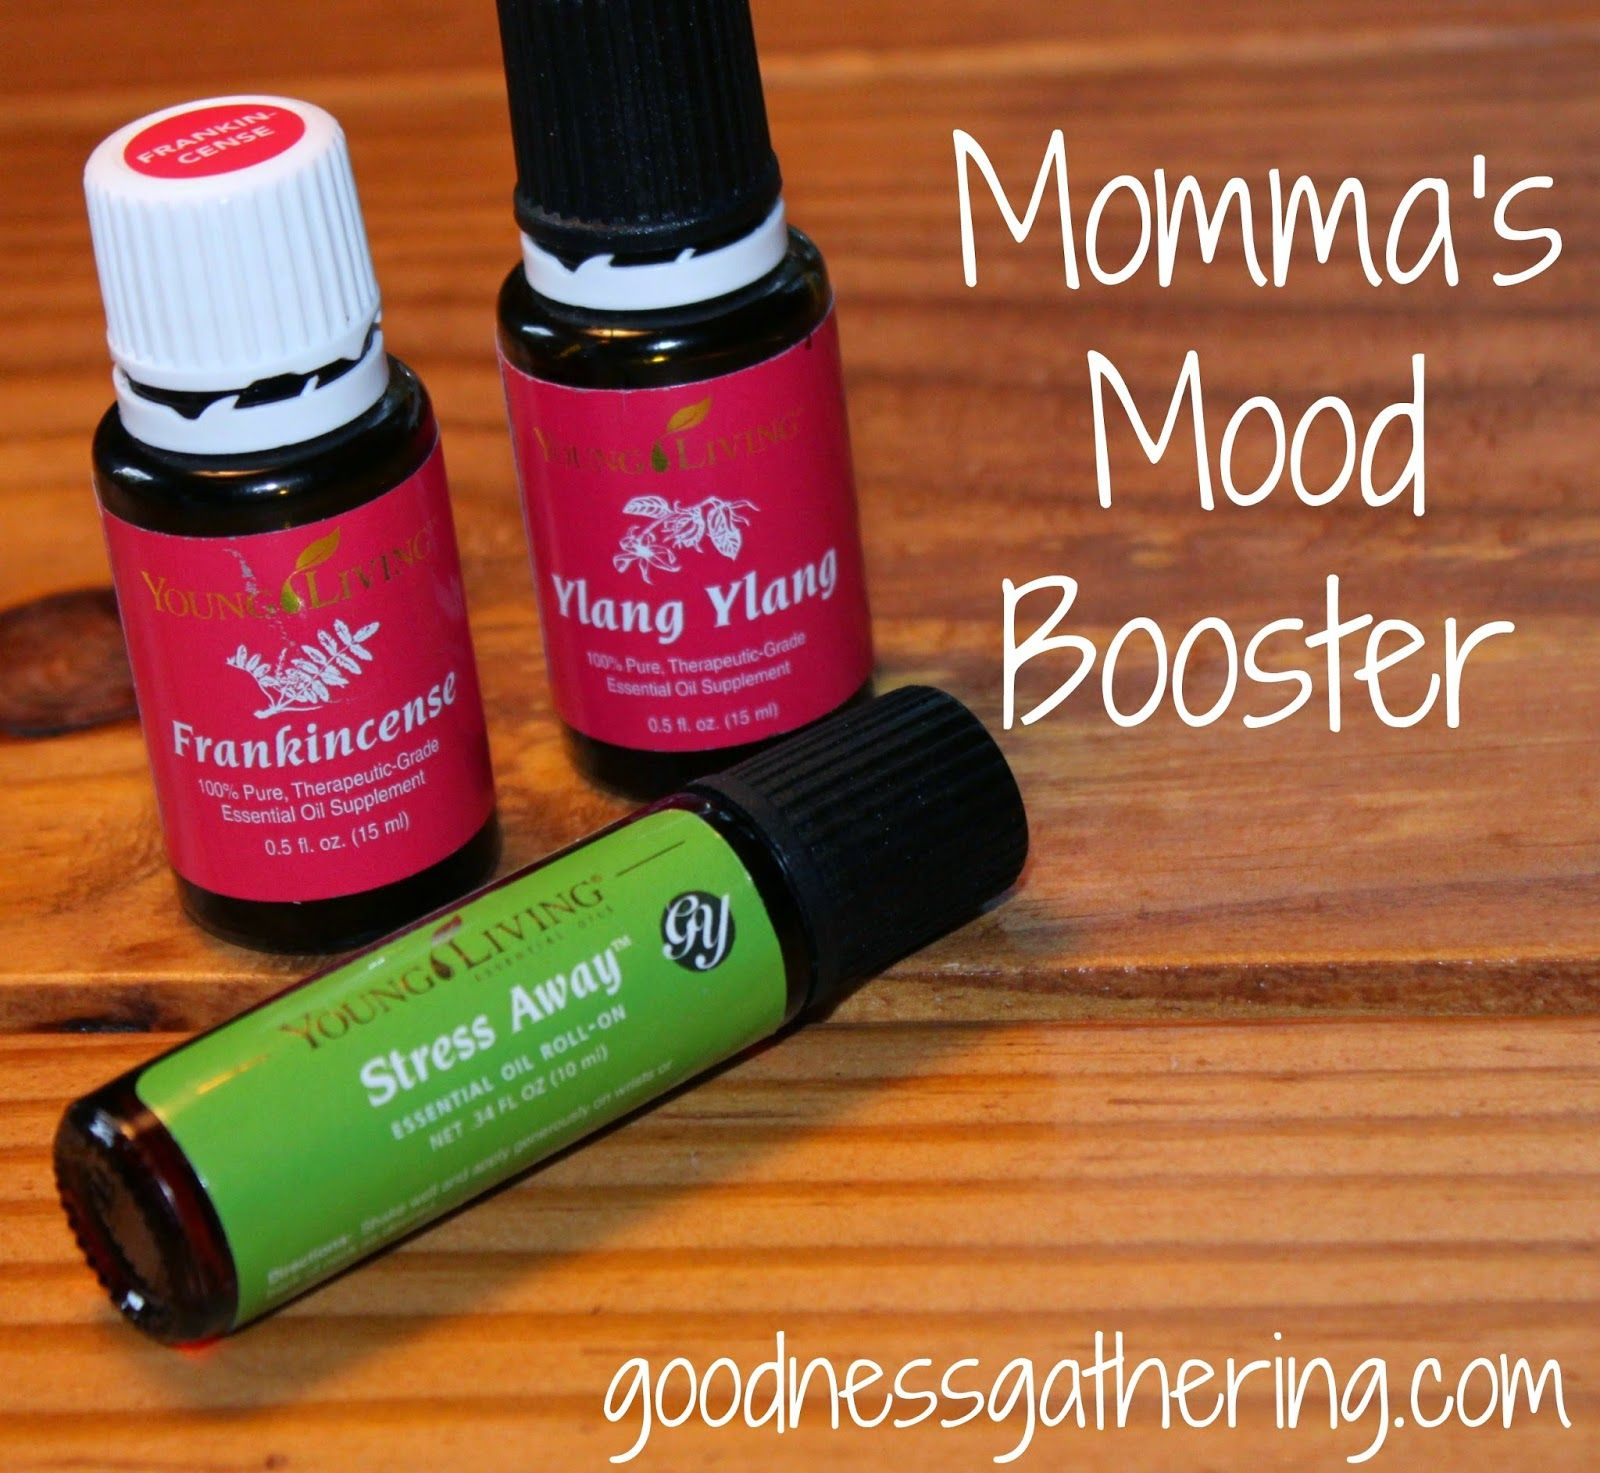 Momma's Mood Booster - the oily support Momma's need to get through the day!